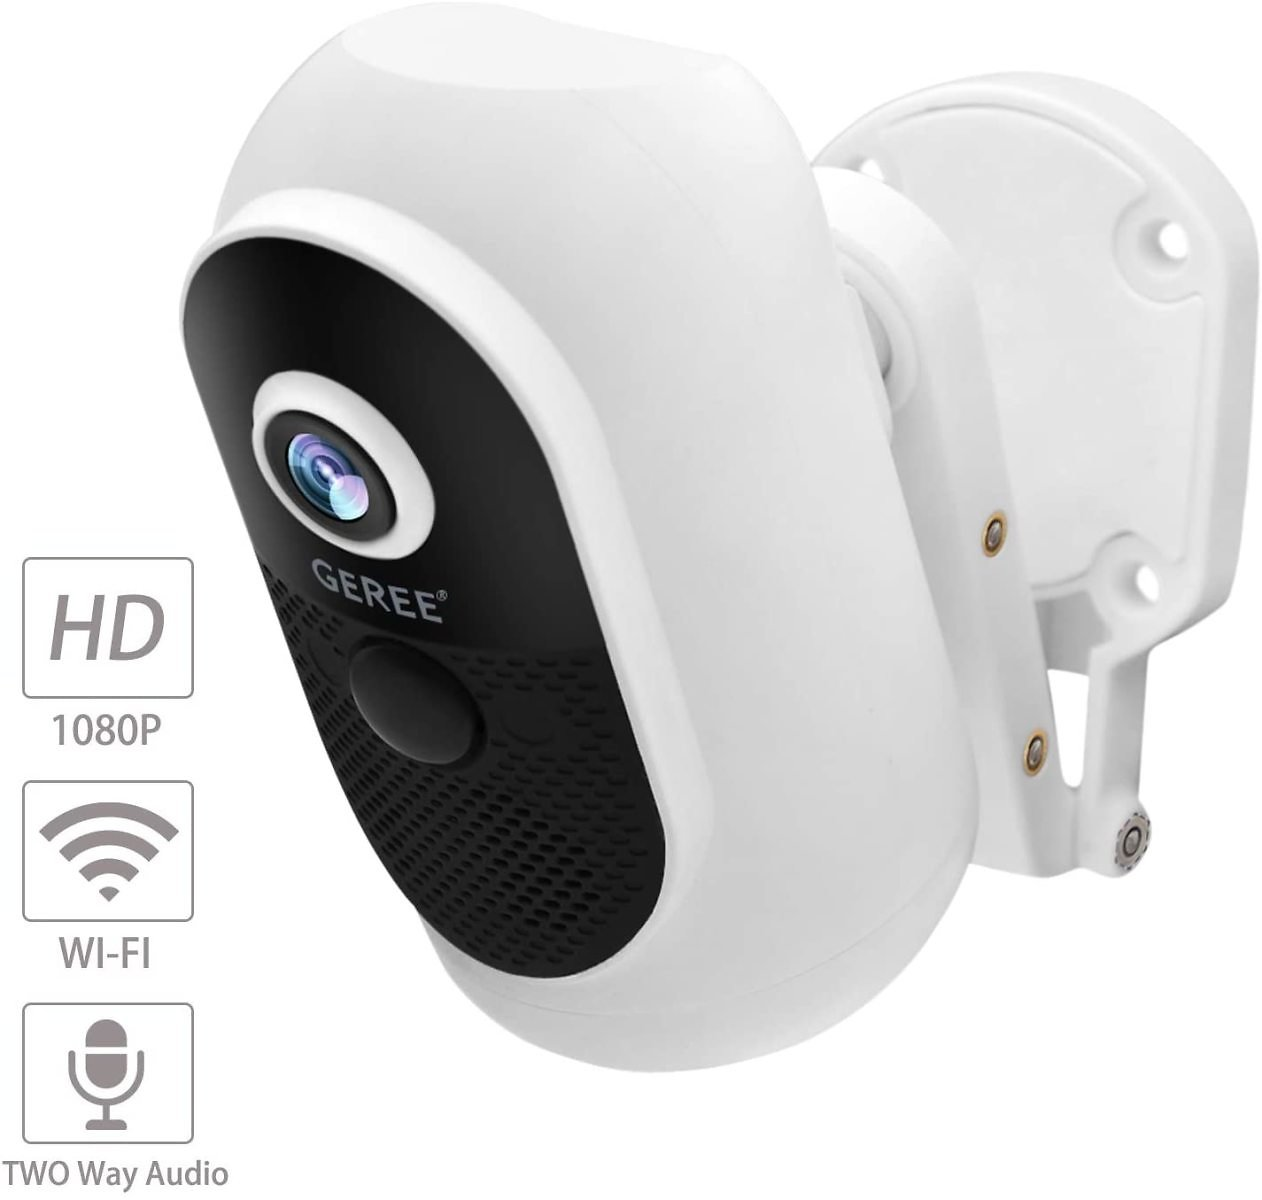 Wireless Outdoor Security Camera,Rechargeable Battery Powered WiFi Camera, Indoor/Outdoor Surveillance Home Camera,GEREE 1080P V